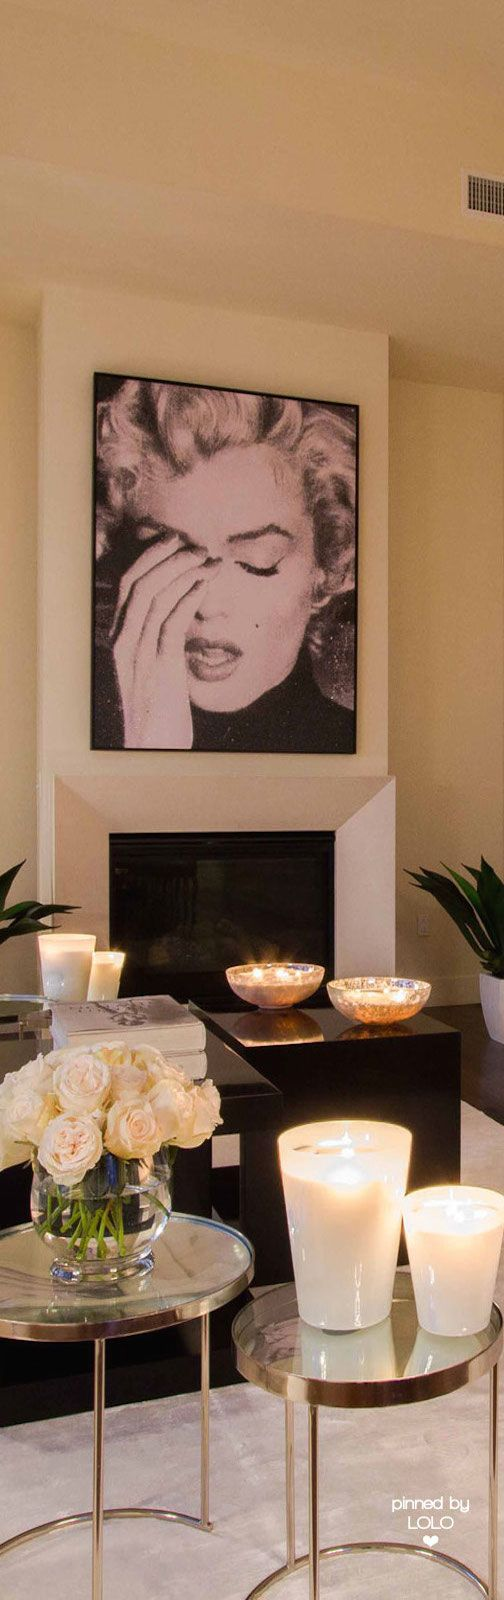 Marilyn Monroe Living Room Decor 17 Best Ideas About Marilyn Monroe Decor On Pinterest Marilyn